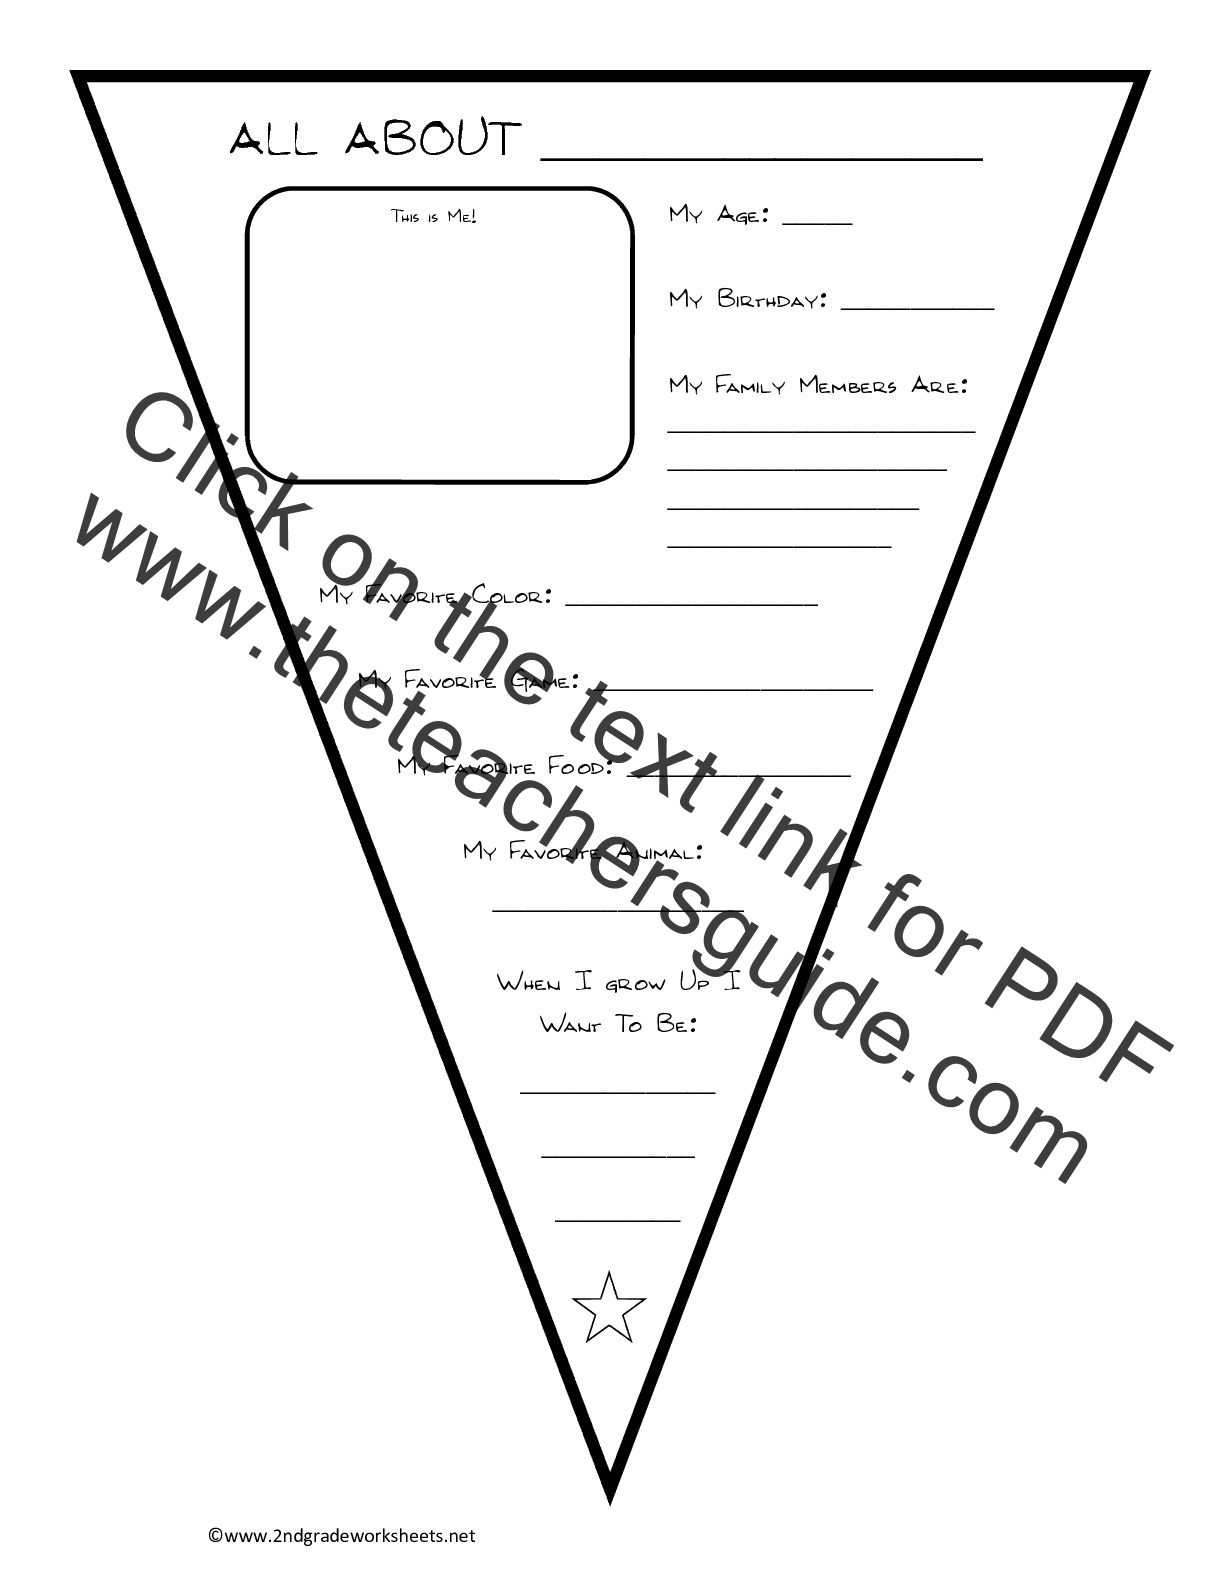 Worksheets Free Printable All About Me Worksheet free back to school worksheets and printouts about me poster